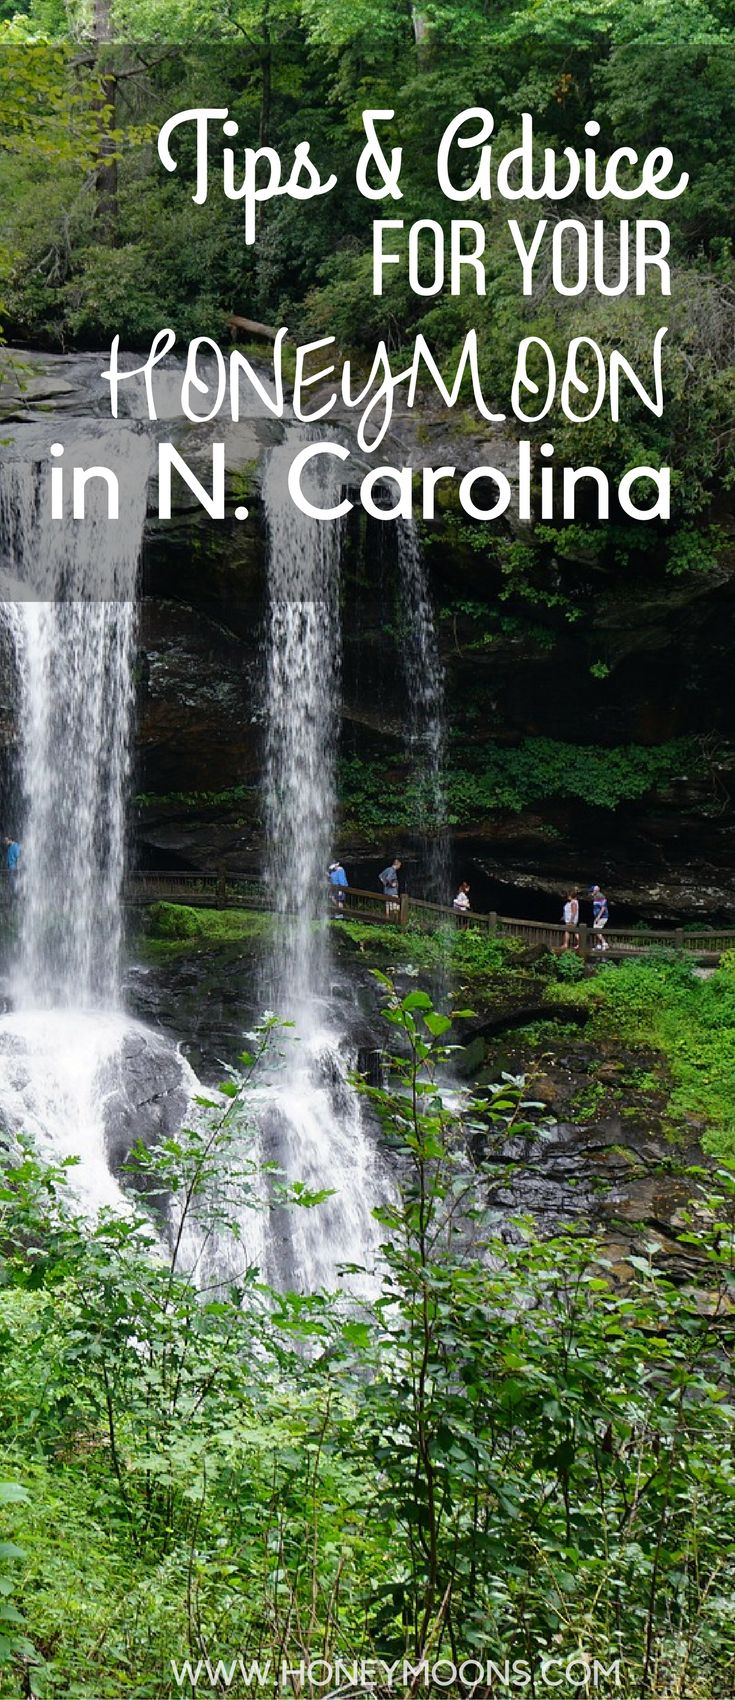 There are some destinations where the name alone is enough to conjure up very specific and wonderful images. North Carolina is one such place.  Click through to see what NOT to miss and tips, advice and recommendations for a romantic trip here.